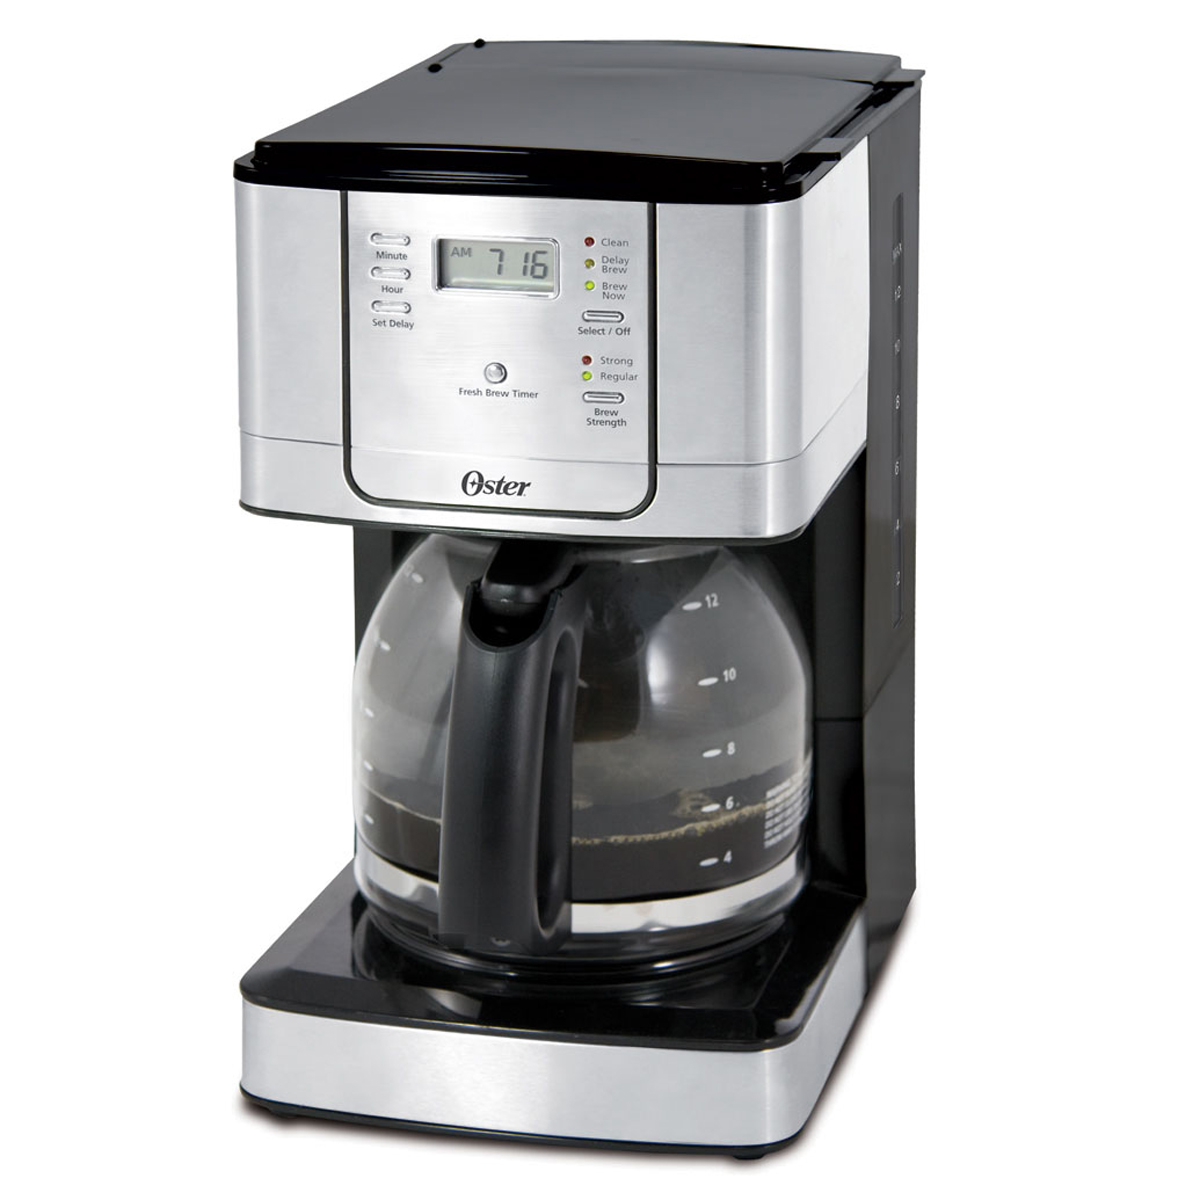 Oster® 12-cup Programmable Coffee Maker 3317-33 Parts